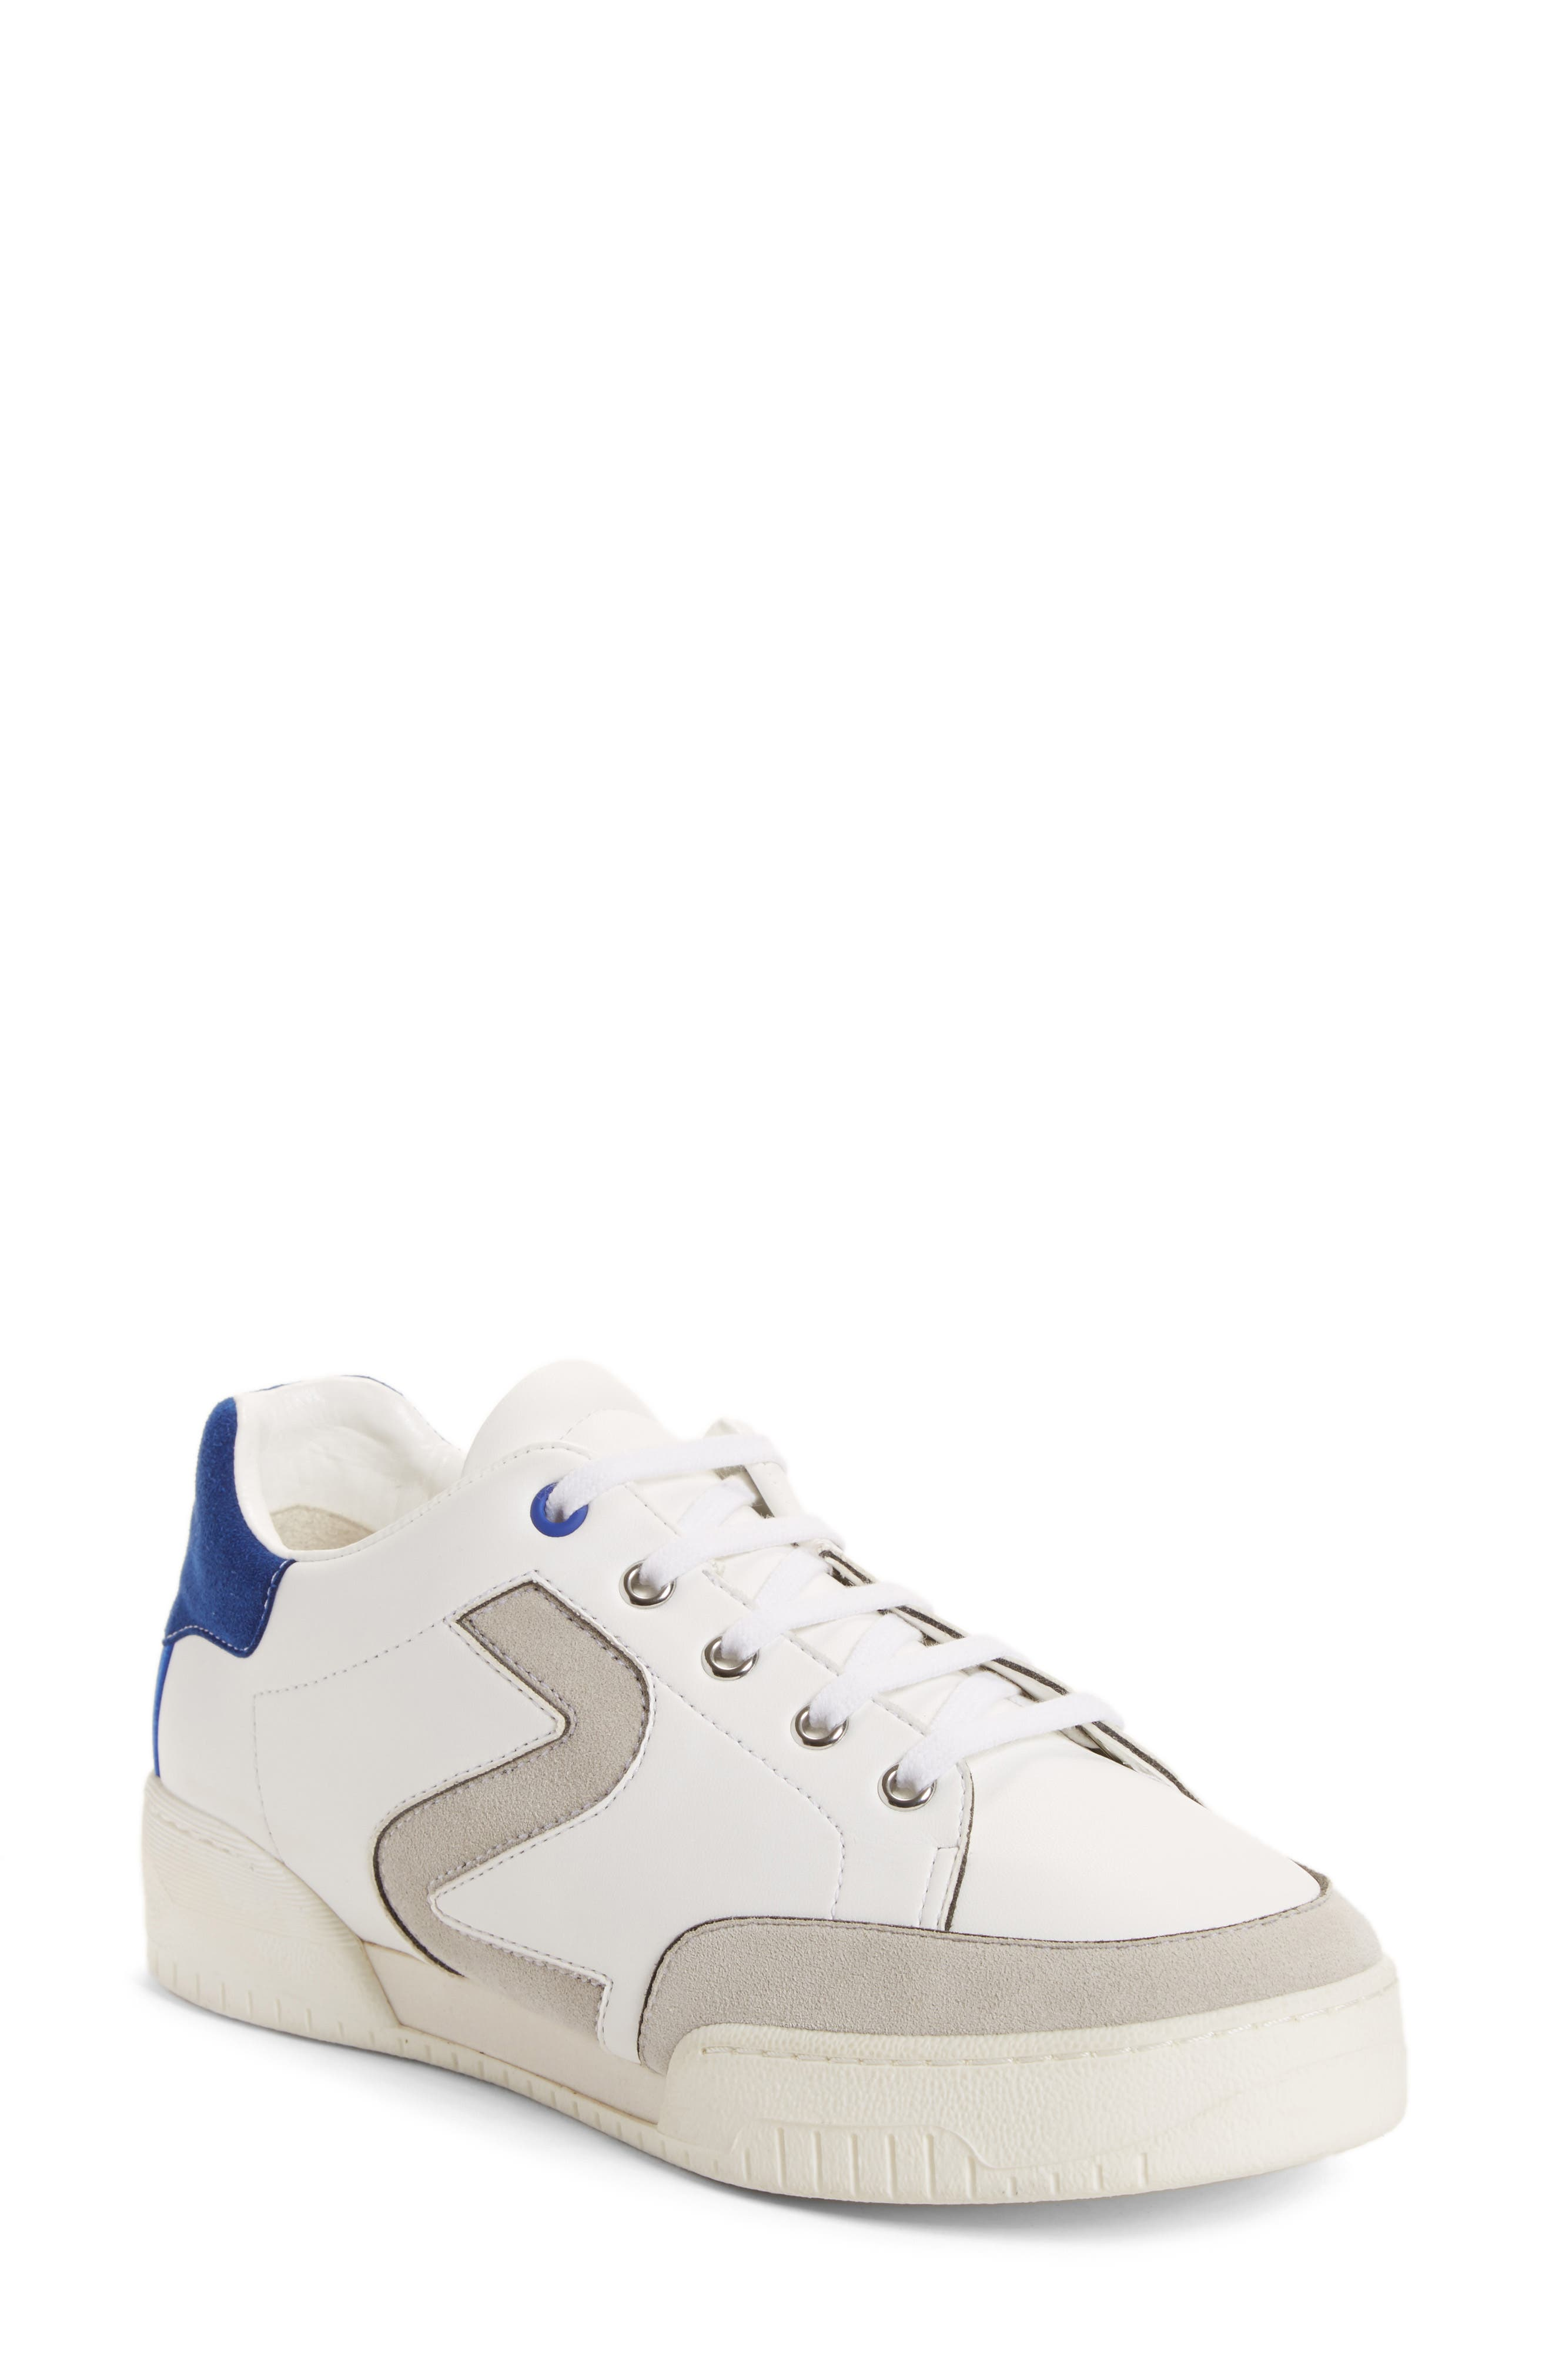 Alternate Image 1 Selected - Stella McCartney Logo Sneaker (Women)